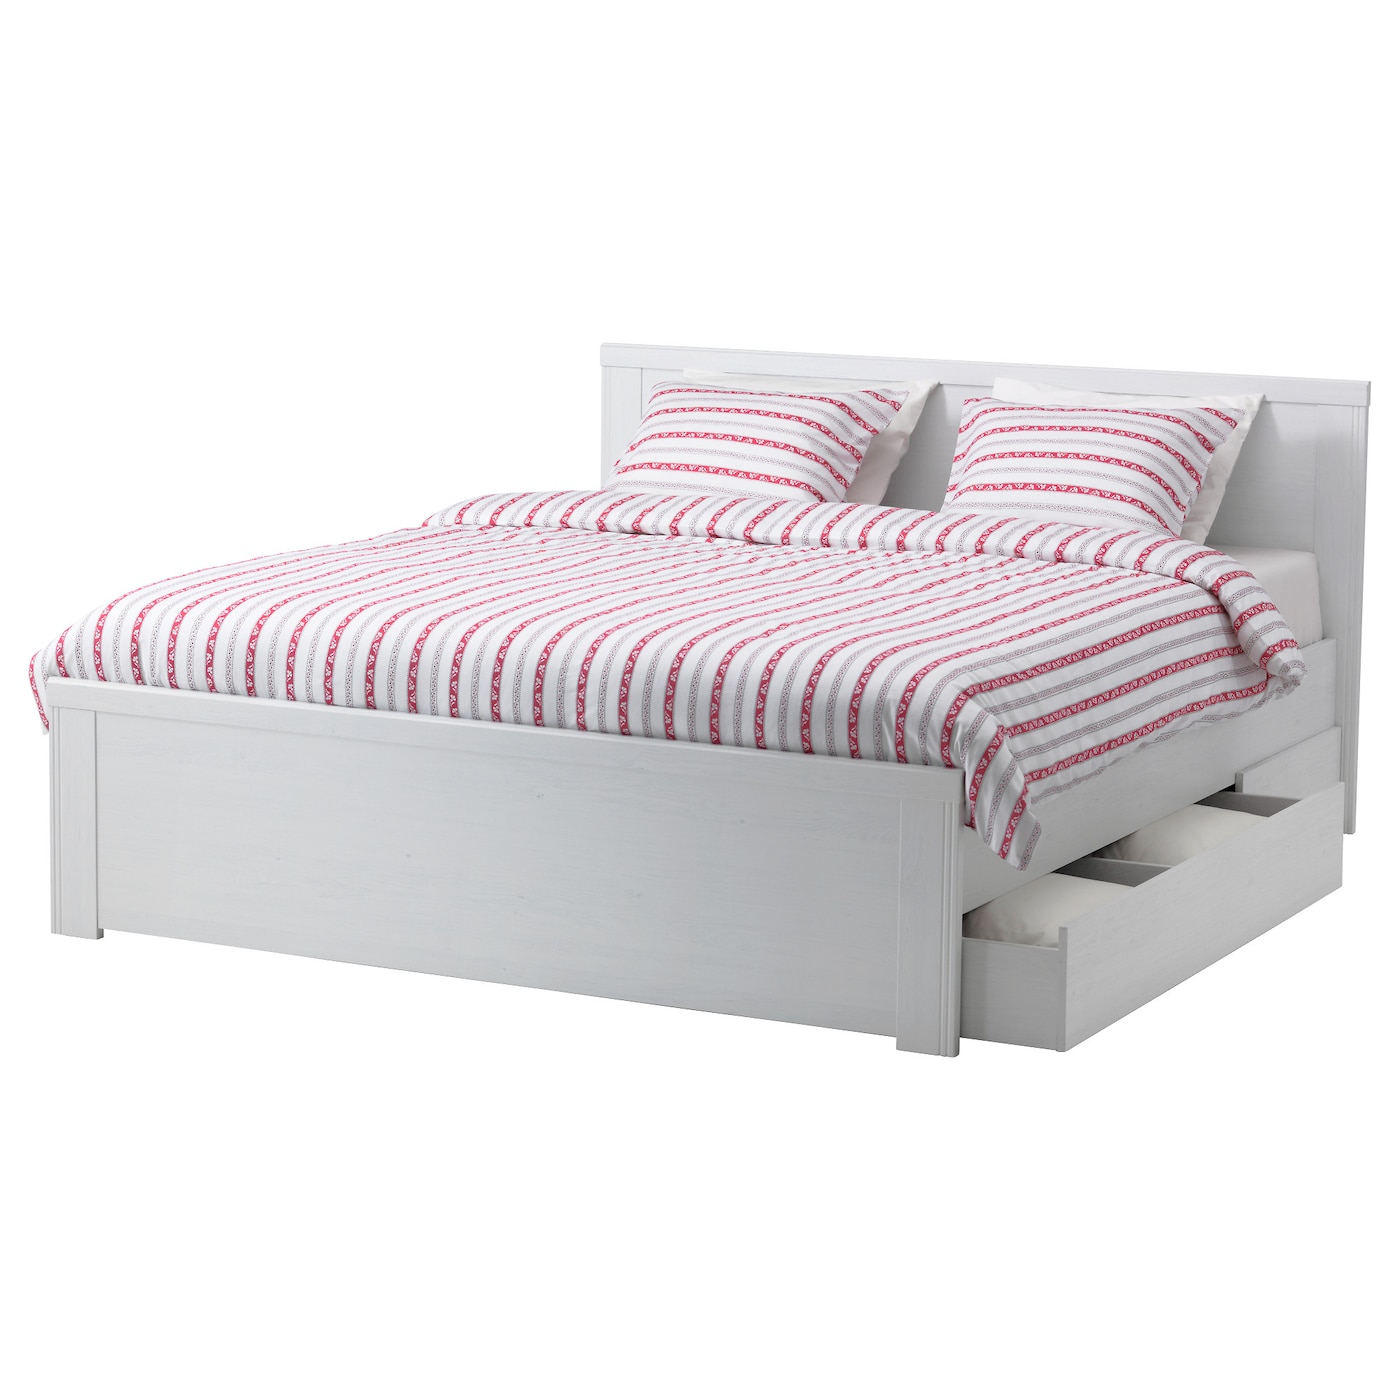 brusali bed frame with 2 storage boxes white 140x200 cm ikea. Black Bedroom Furniture Sets. Home Design Ideas